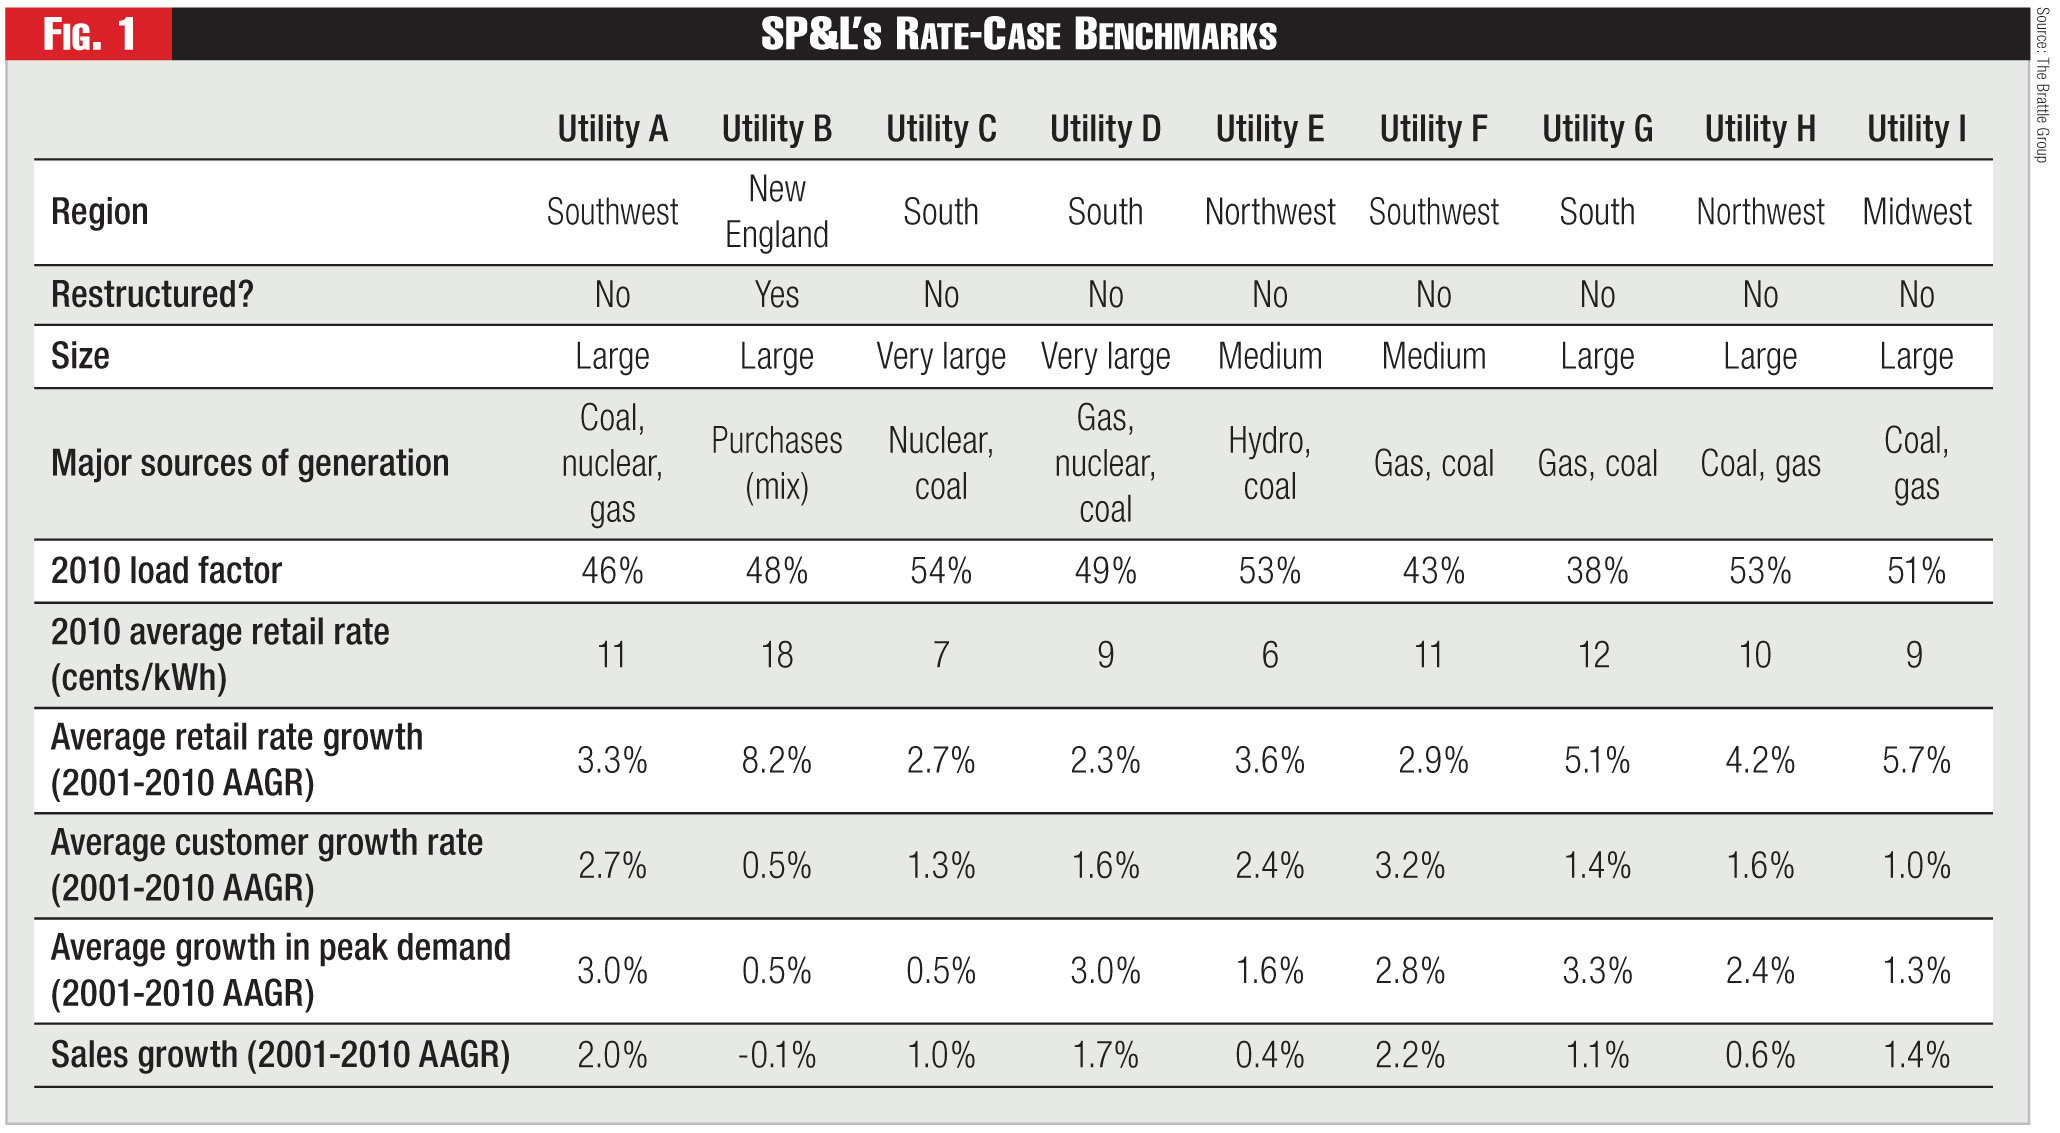 Figure 1 - SP&L's Rate-Case Benchmarks